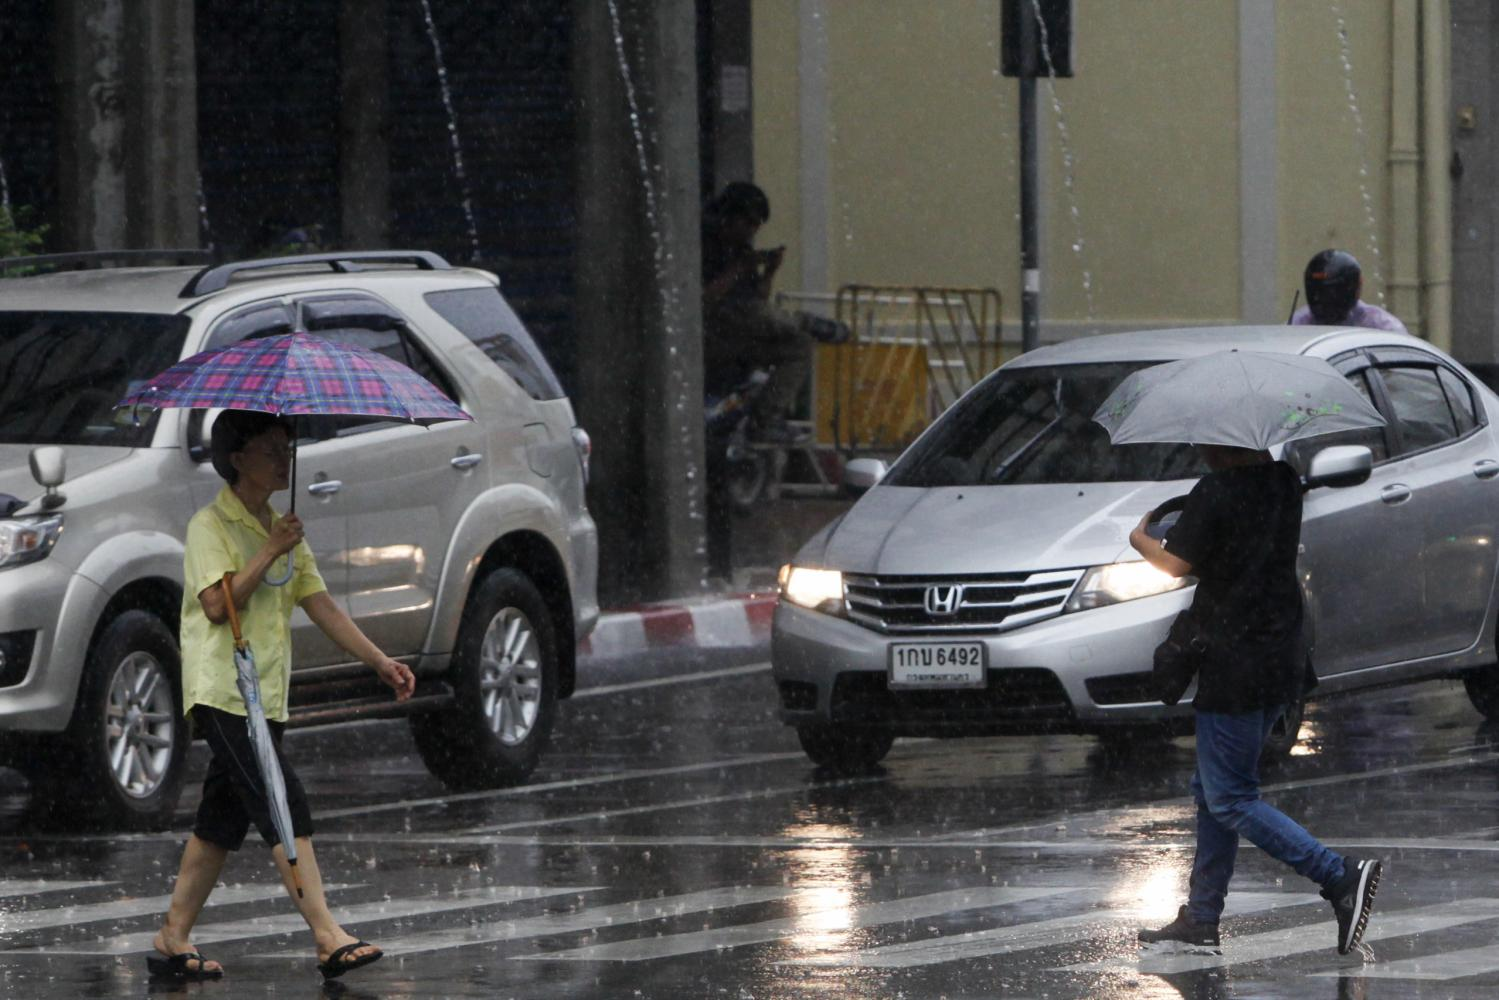 Pedestrians struggle to cross the road at a zebra crossing in the capital. (Bangkok Post photo)